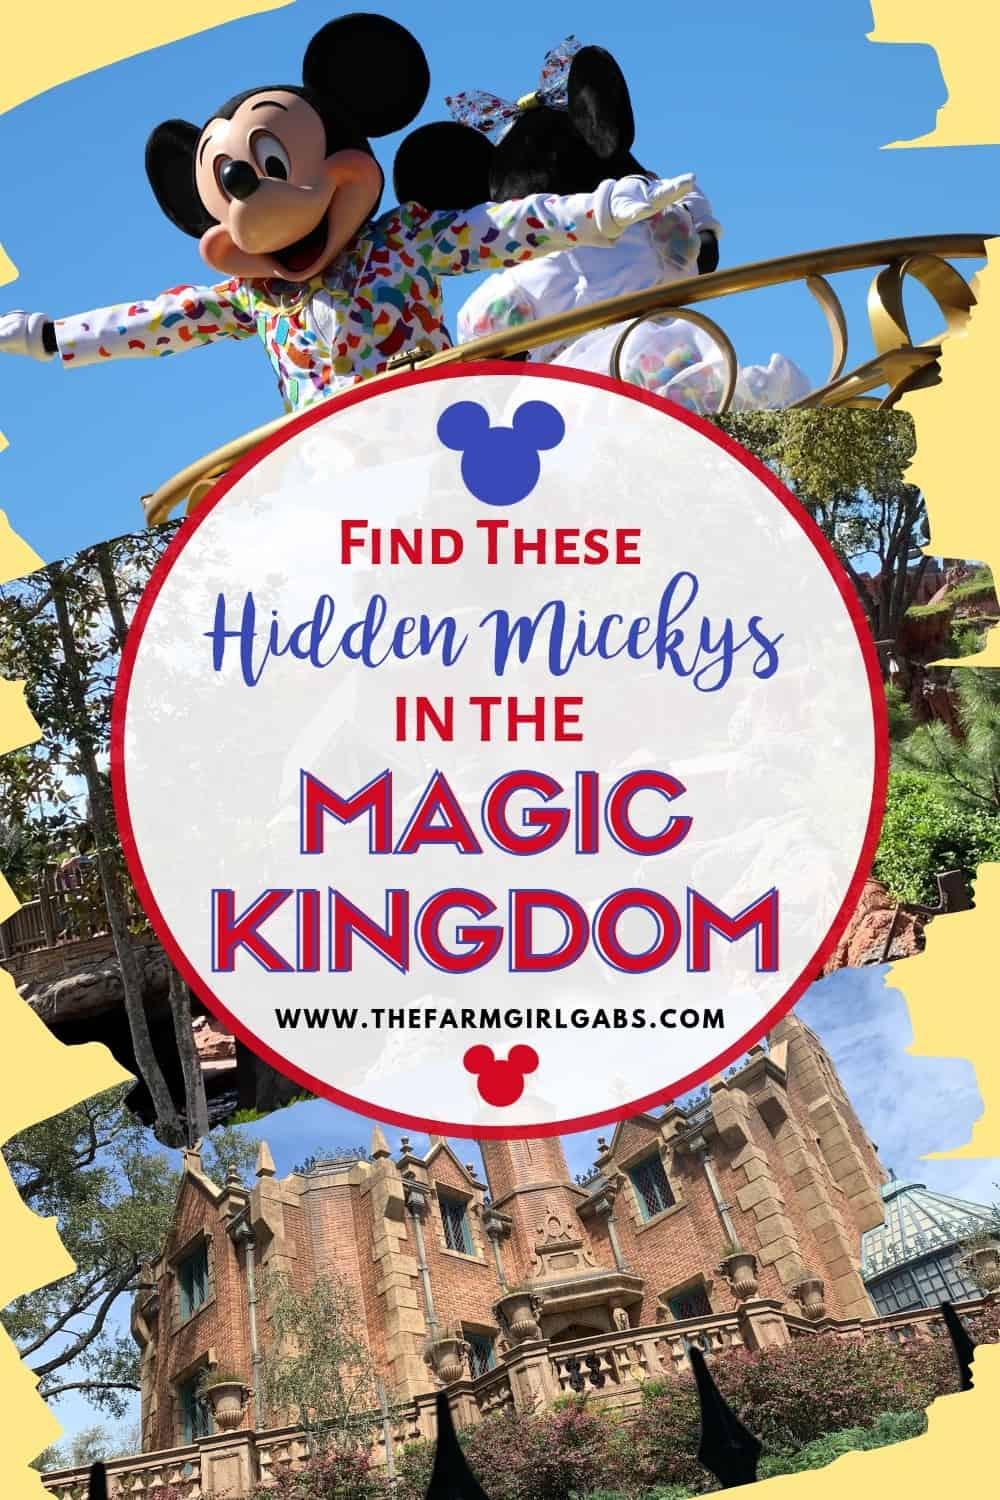 Proportions are important! Here are the best Hidden Mickeys in the Magic Kingdom, not counting the Mickeys naturally occurring in decorative patterns. Can you find them? #hiddenmickeys #magickingdom #Disneytips #Disneypackingtips #Mickeymouse